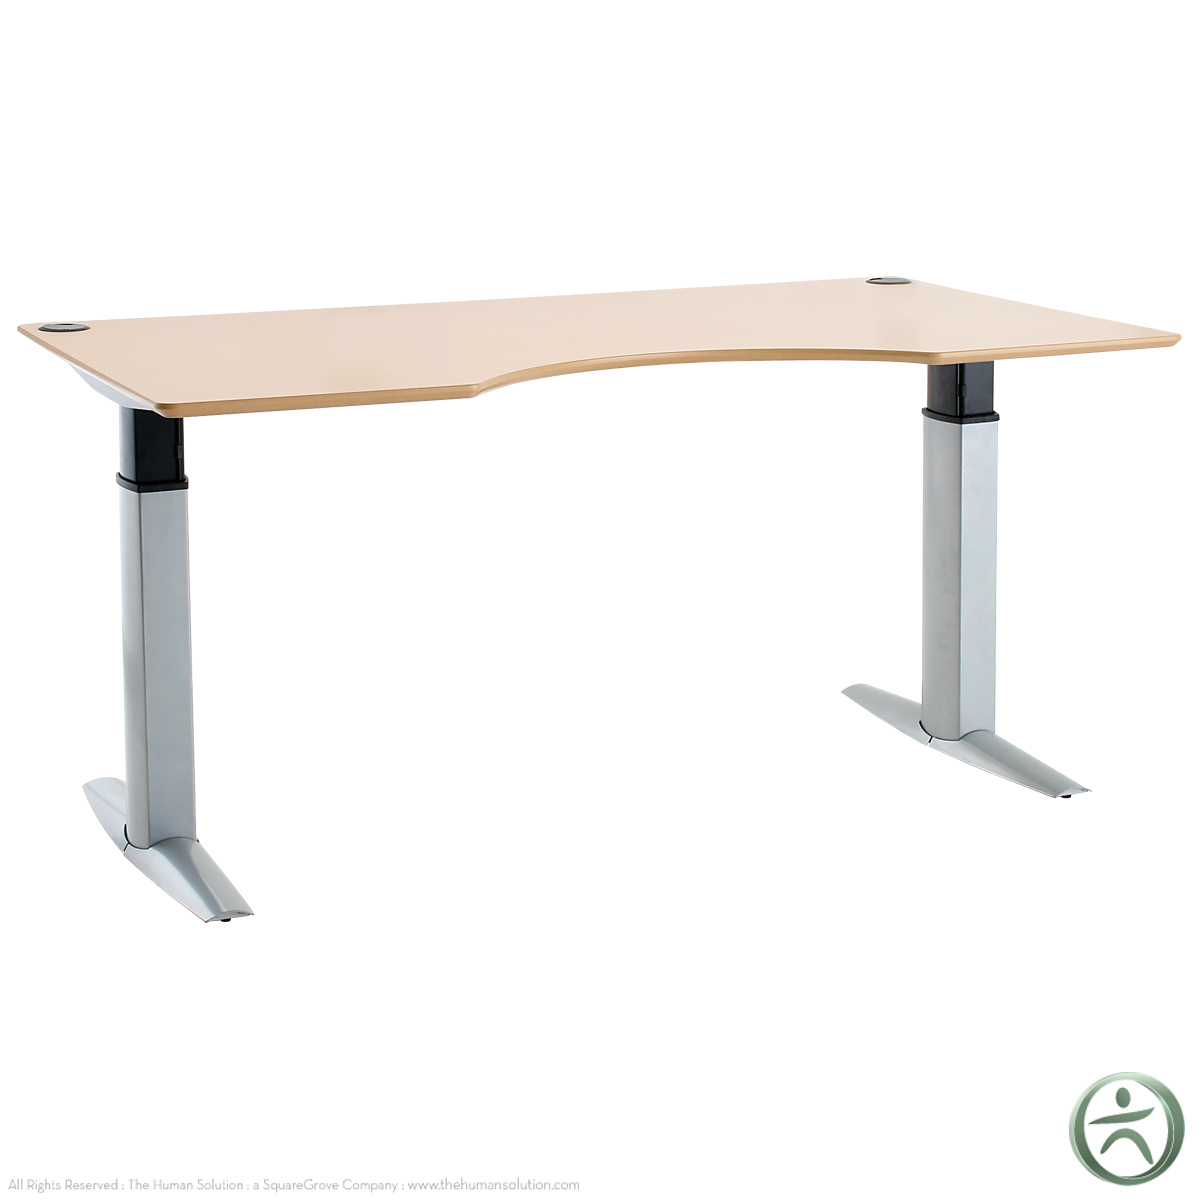 "Conset 501 23 Laminate Electric 26"" 46 5"" Sit Stand Desk"